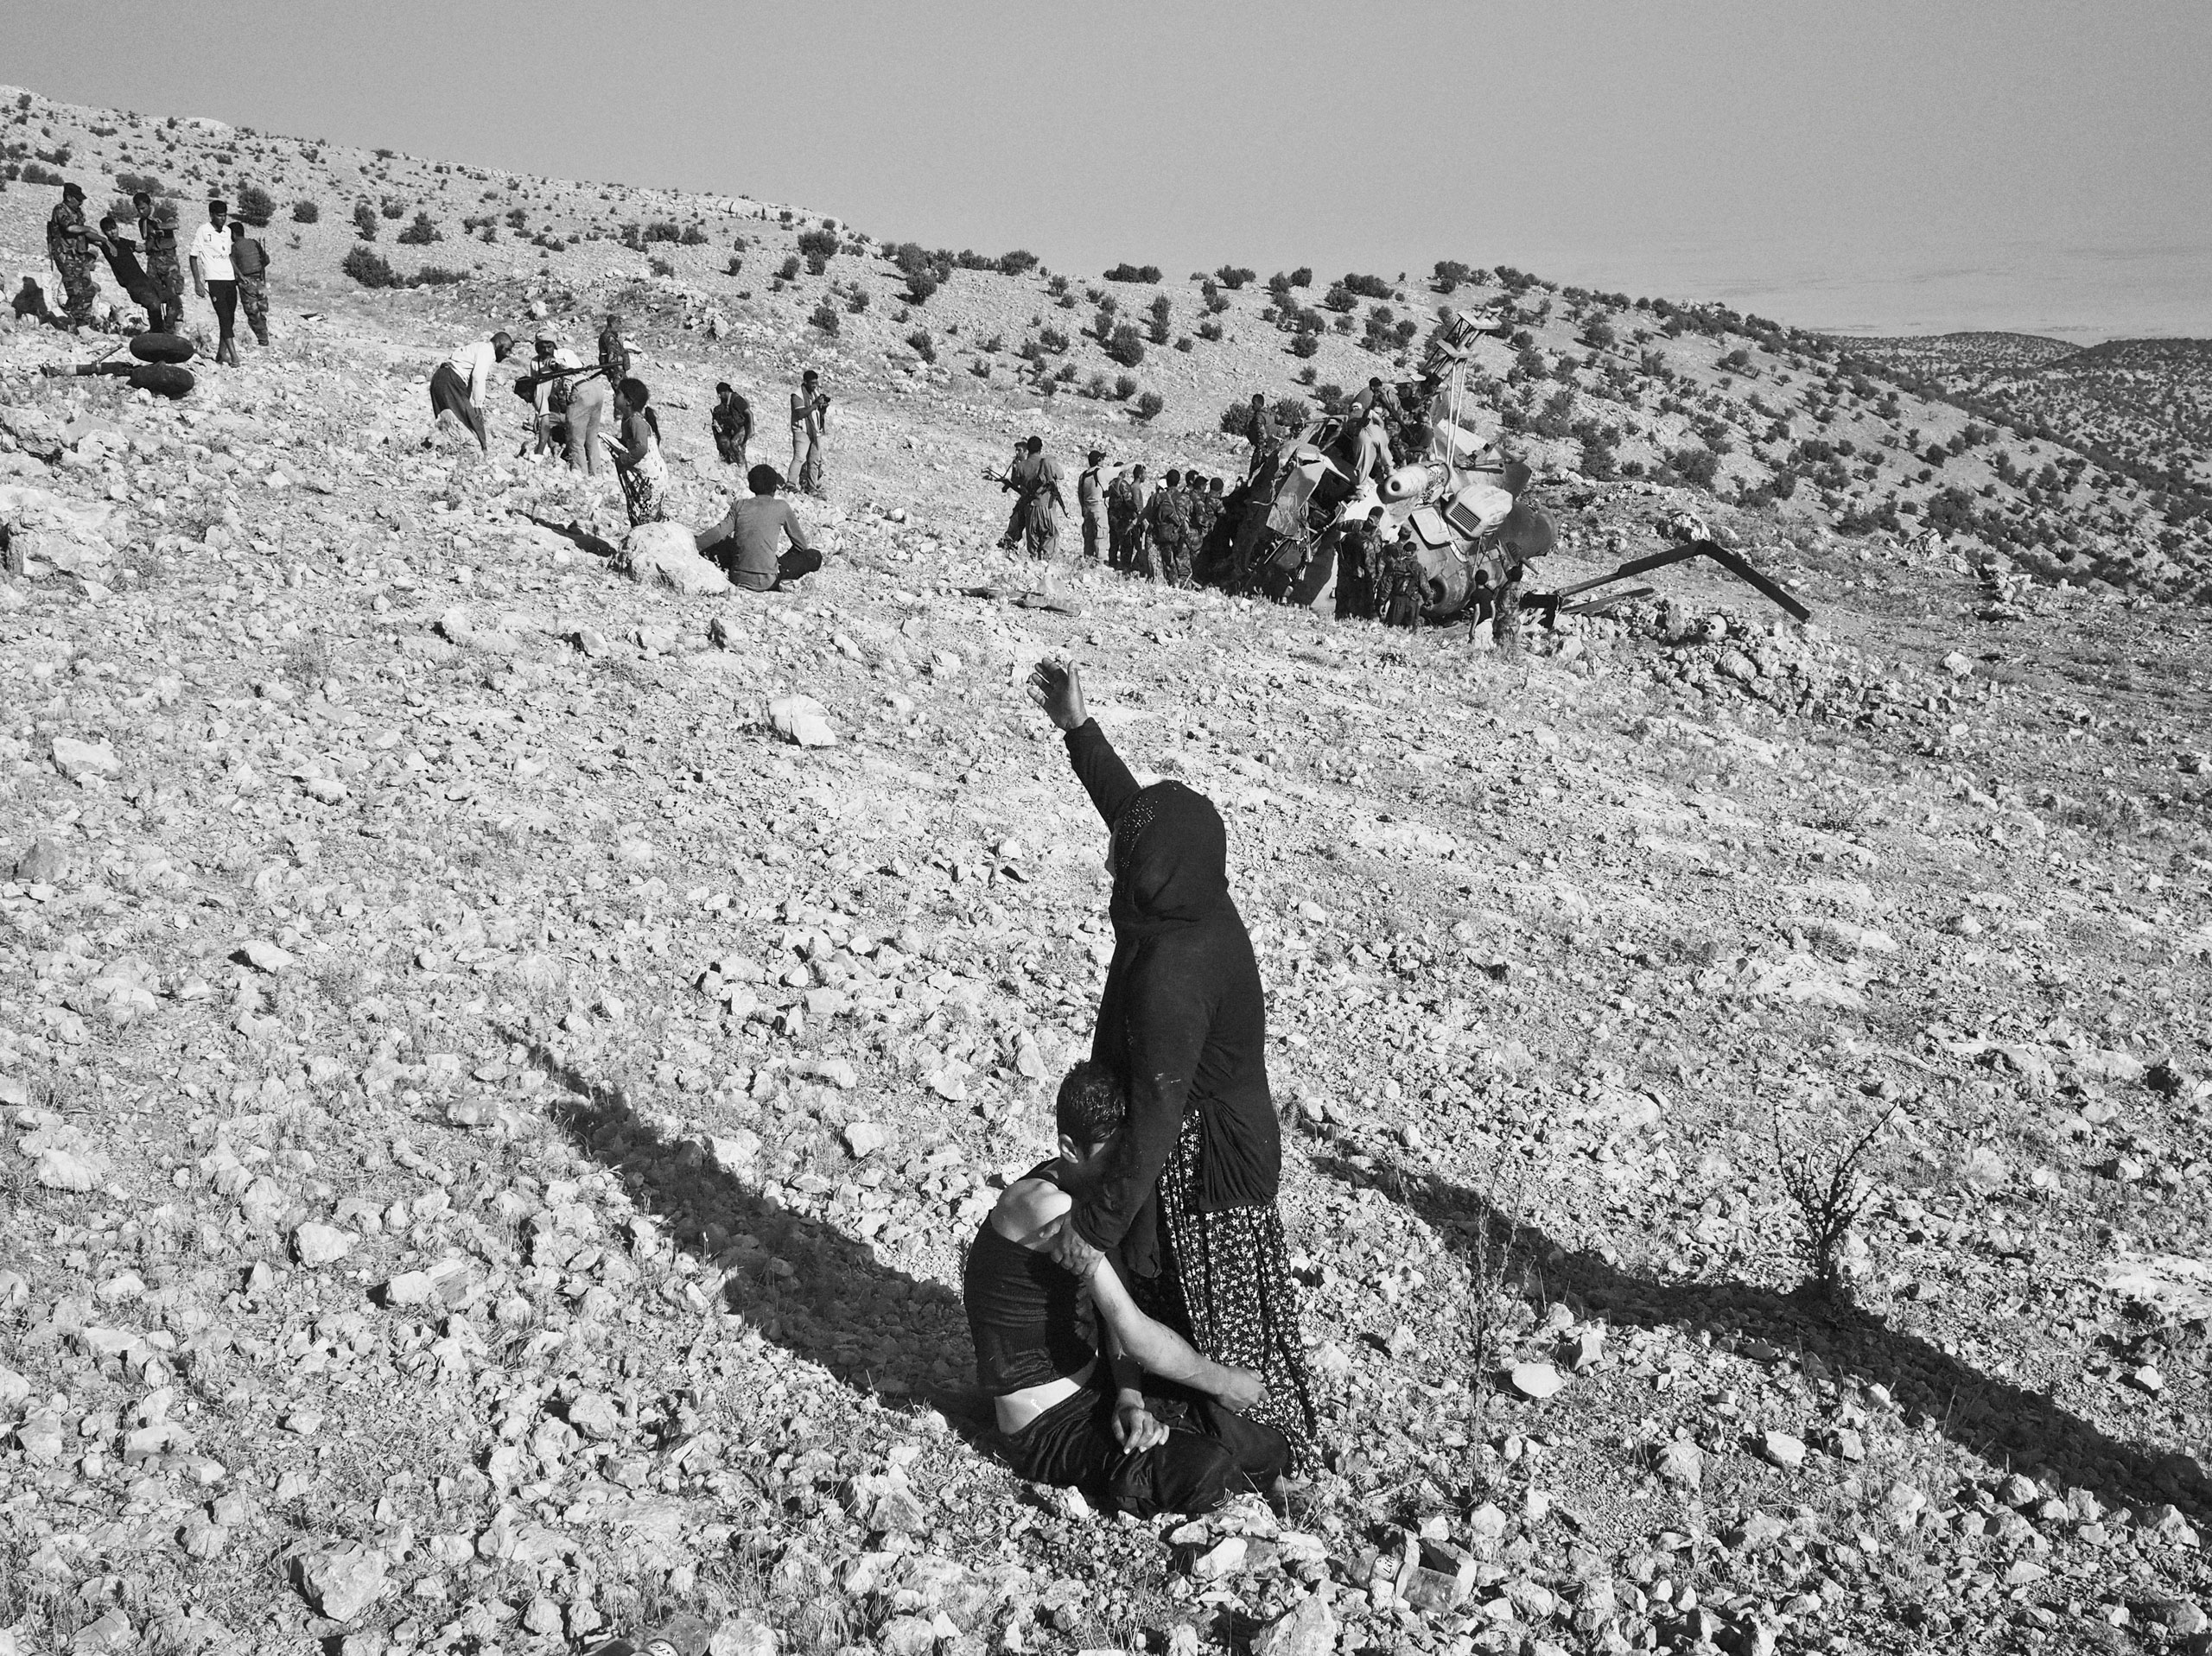 A woman cries for help as she holds on to her wounded son at the crash site of an Iraqi air force helicopter. Sinjar Mountains, Iraq. Aug. 12, 2014.